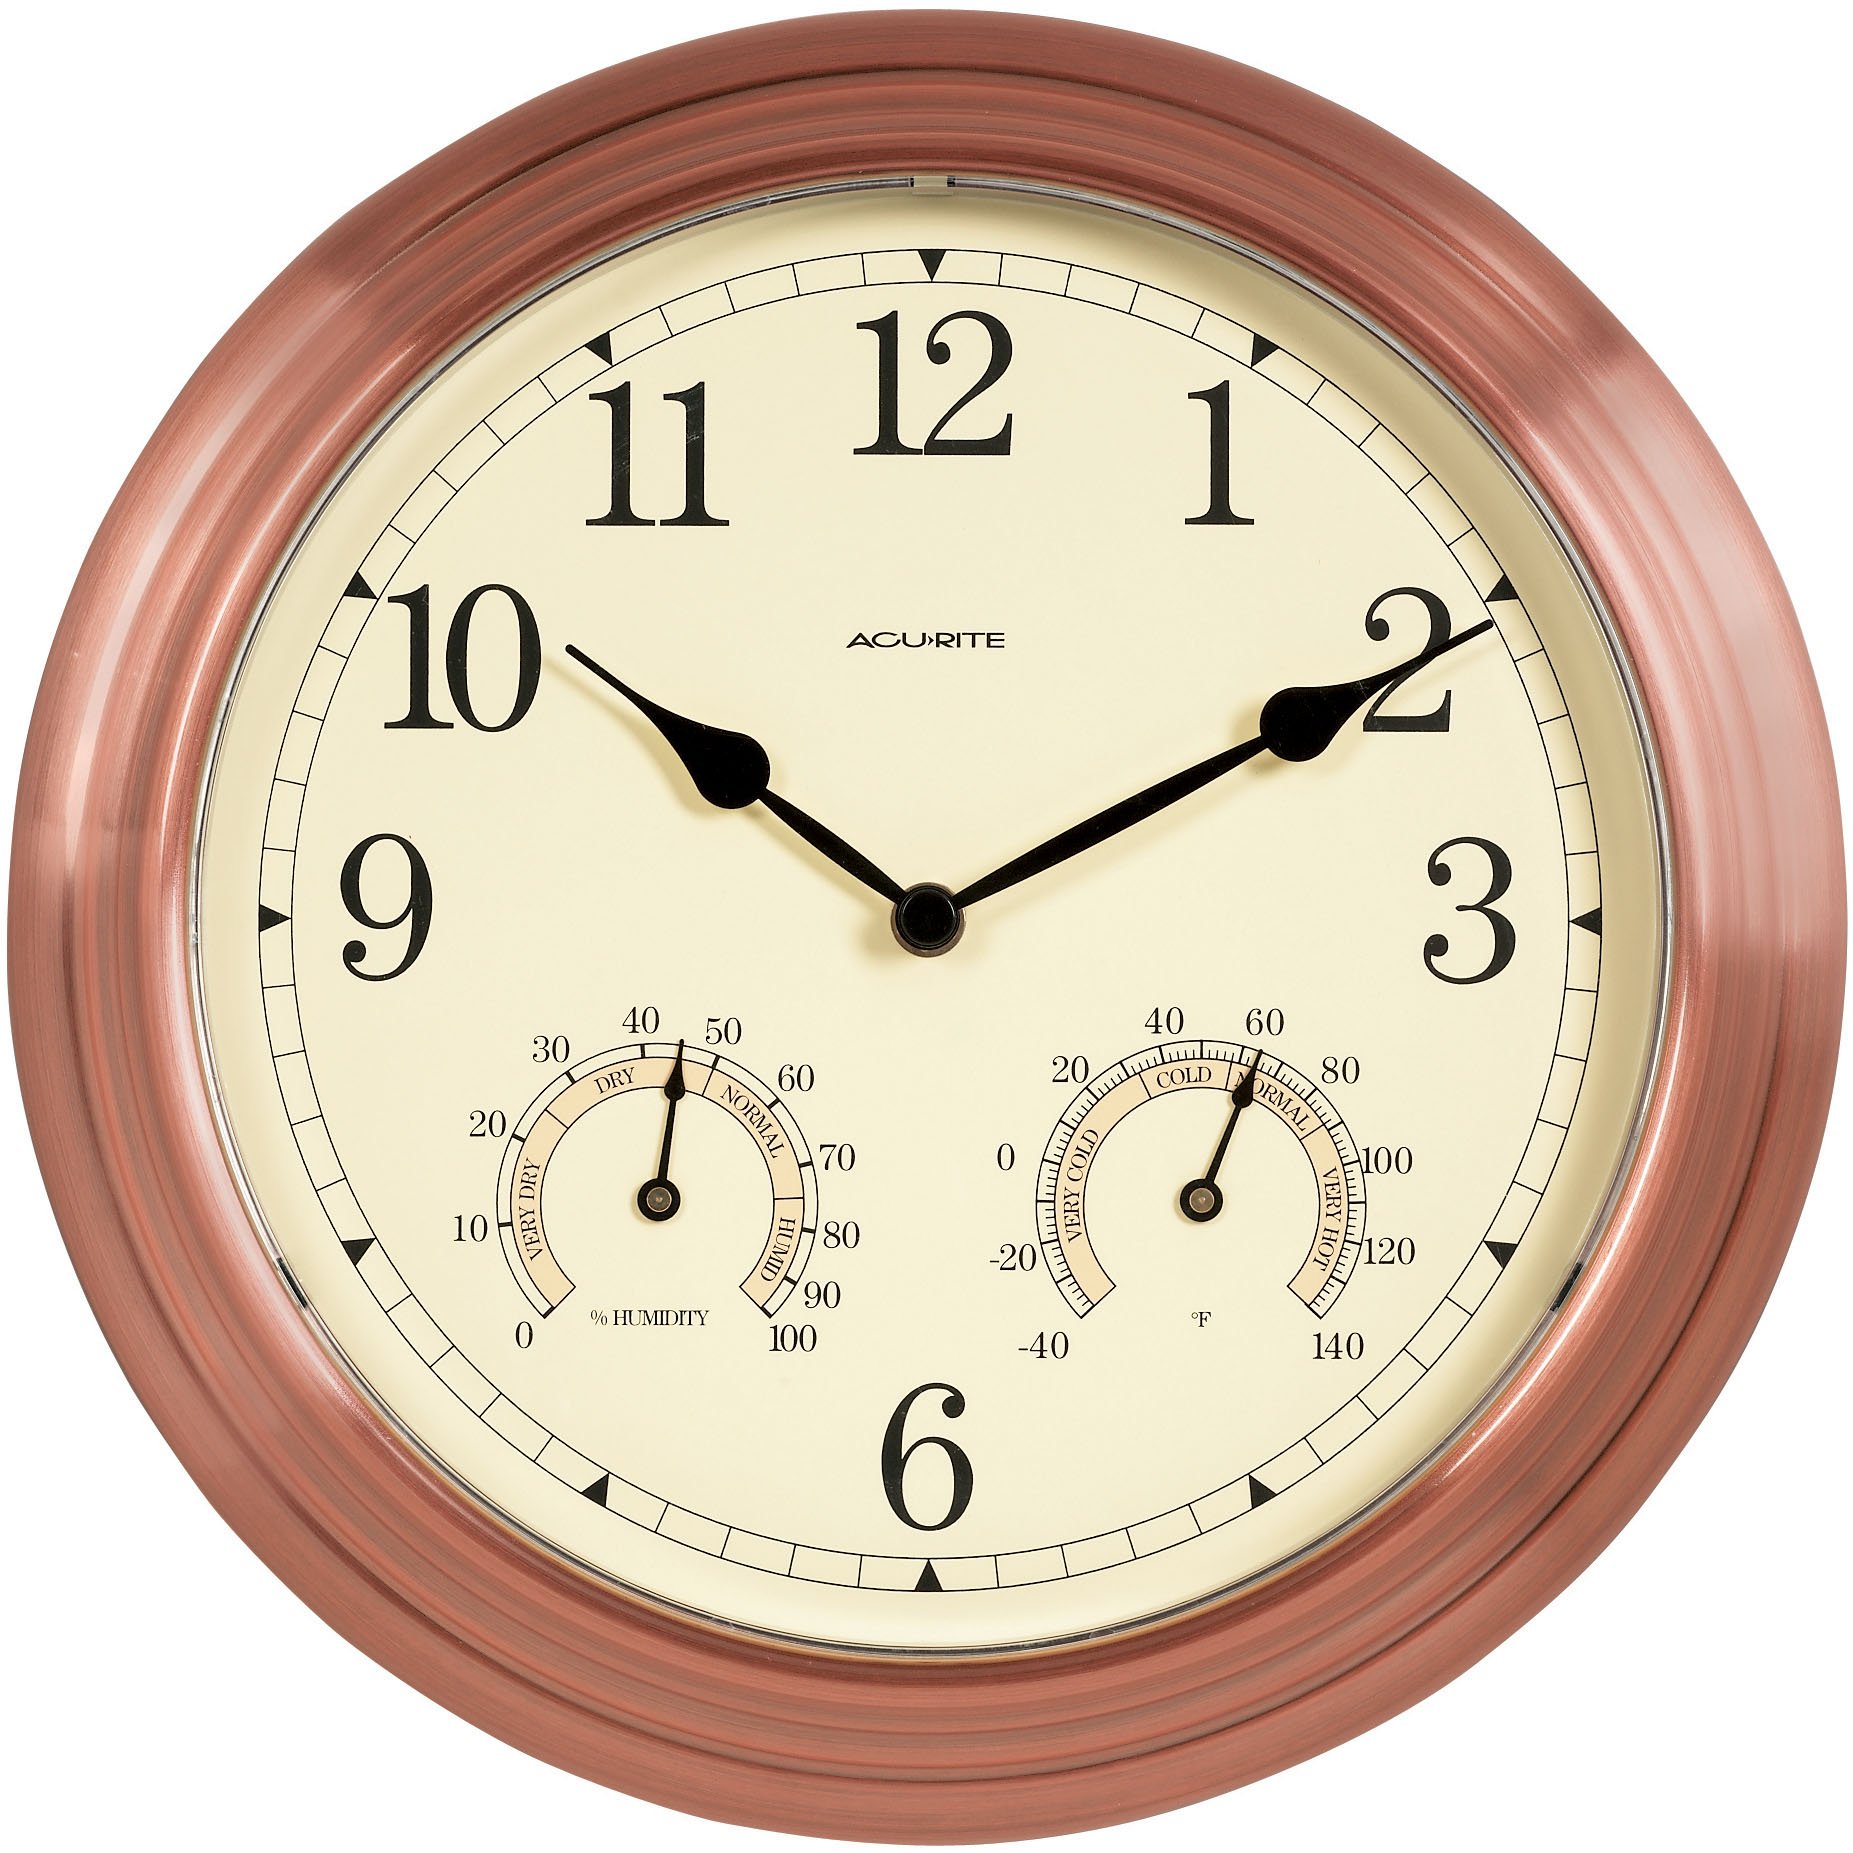 13 inch Copper Indoor Outdoor Clock with Thermometer and Humidity